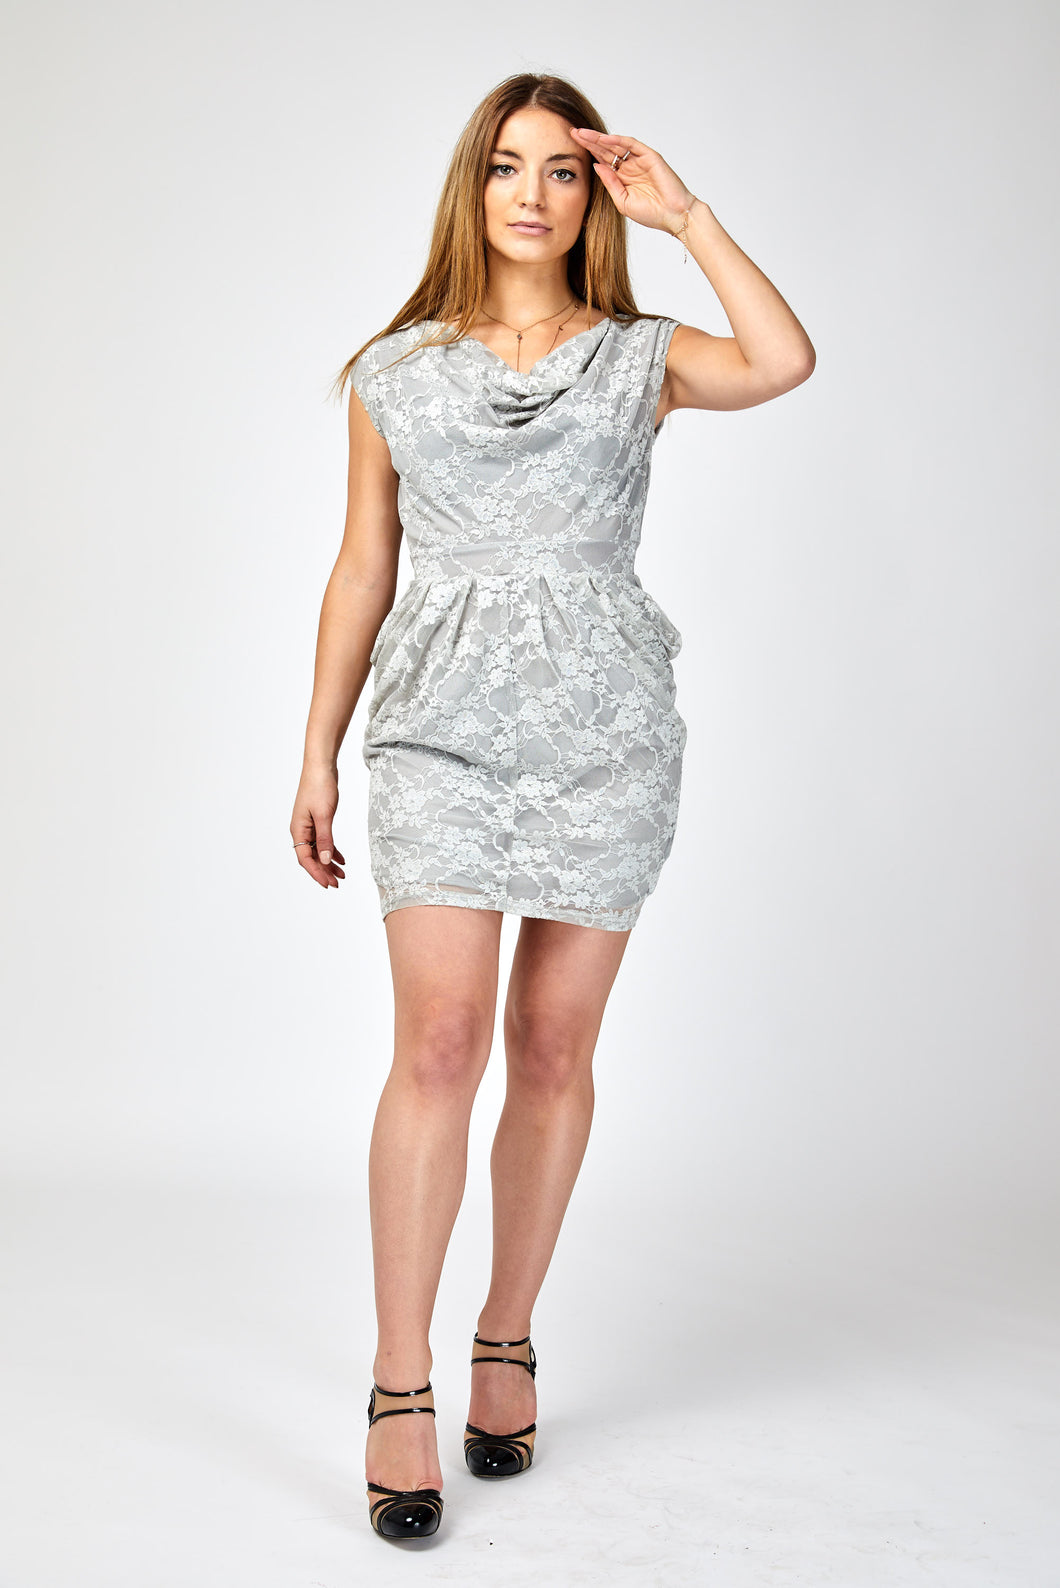 Luc Ce Mini Dress